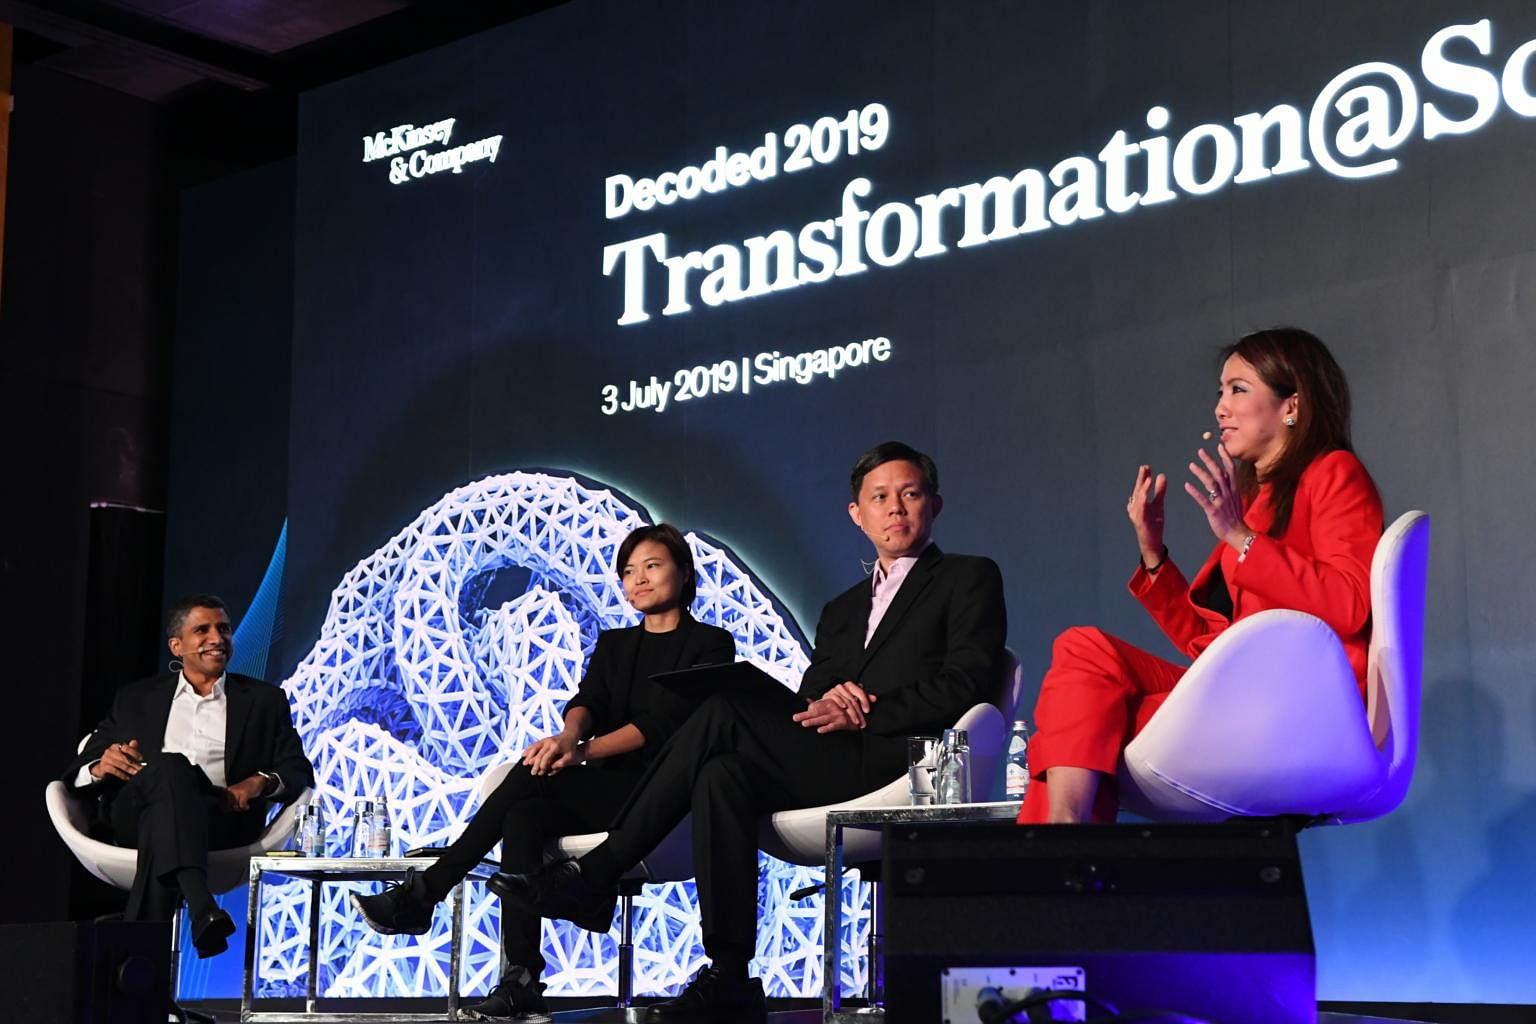 Successful digital transformation in firms must involve all